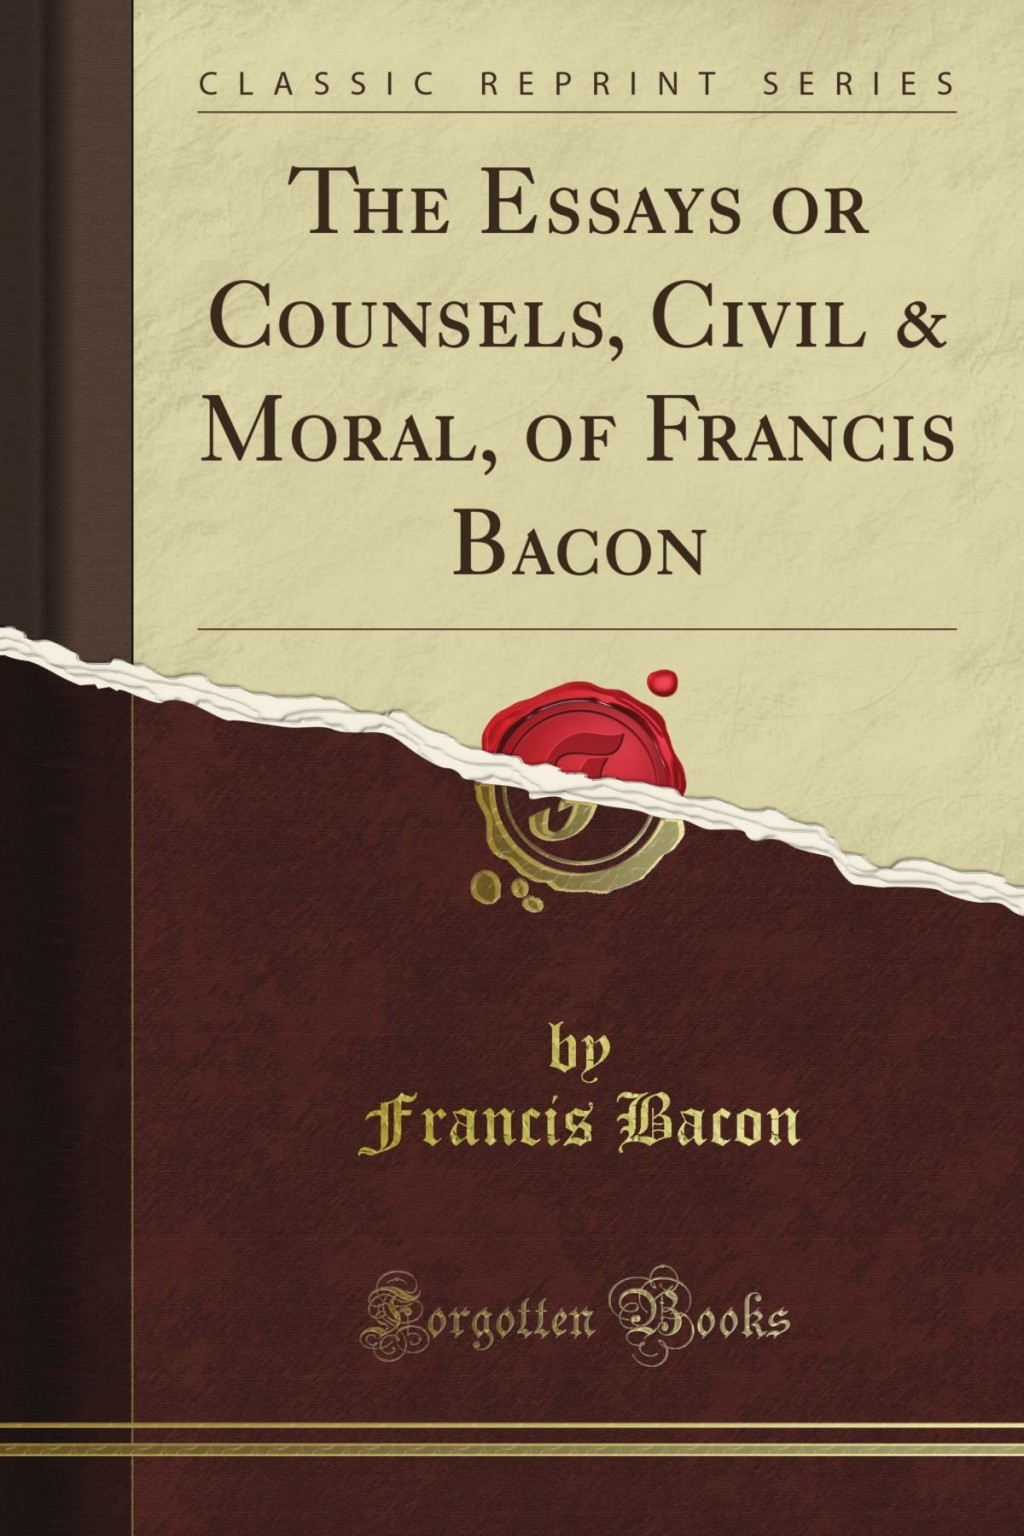 018 81jugg1lv8l Francis Bacon Essays Essay Awesome Analysis Pdf Of Truth Download Critical Appreciation Bacon's Large